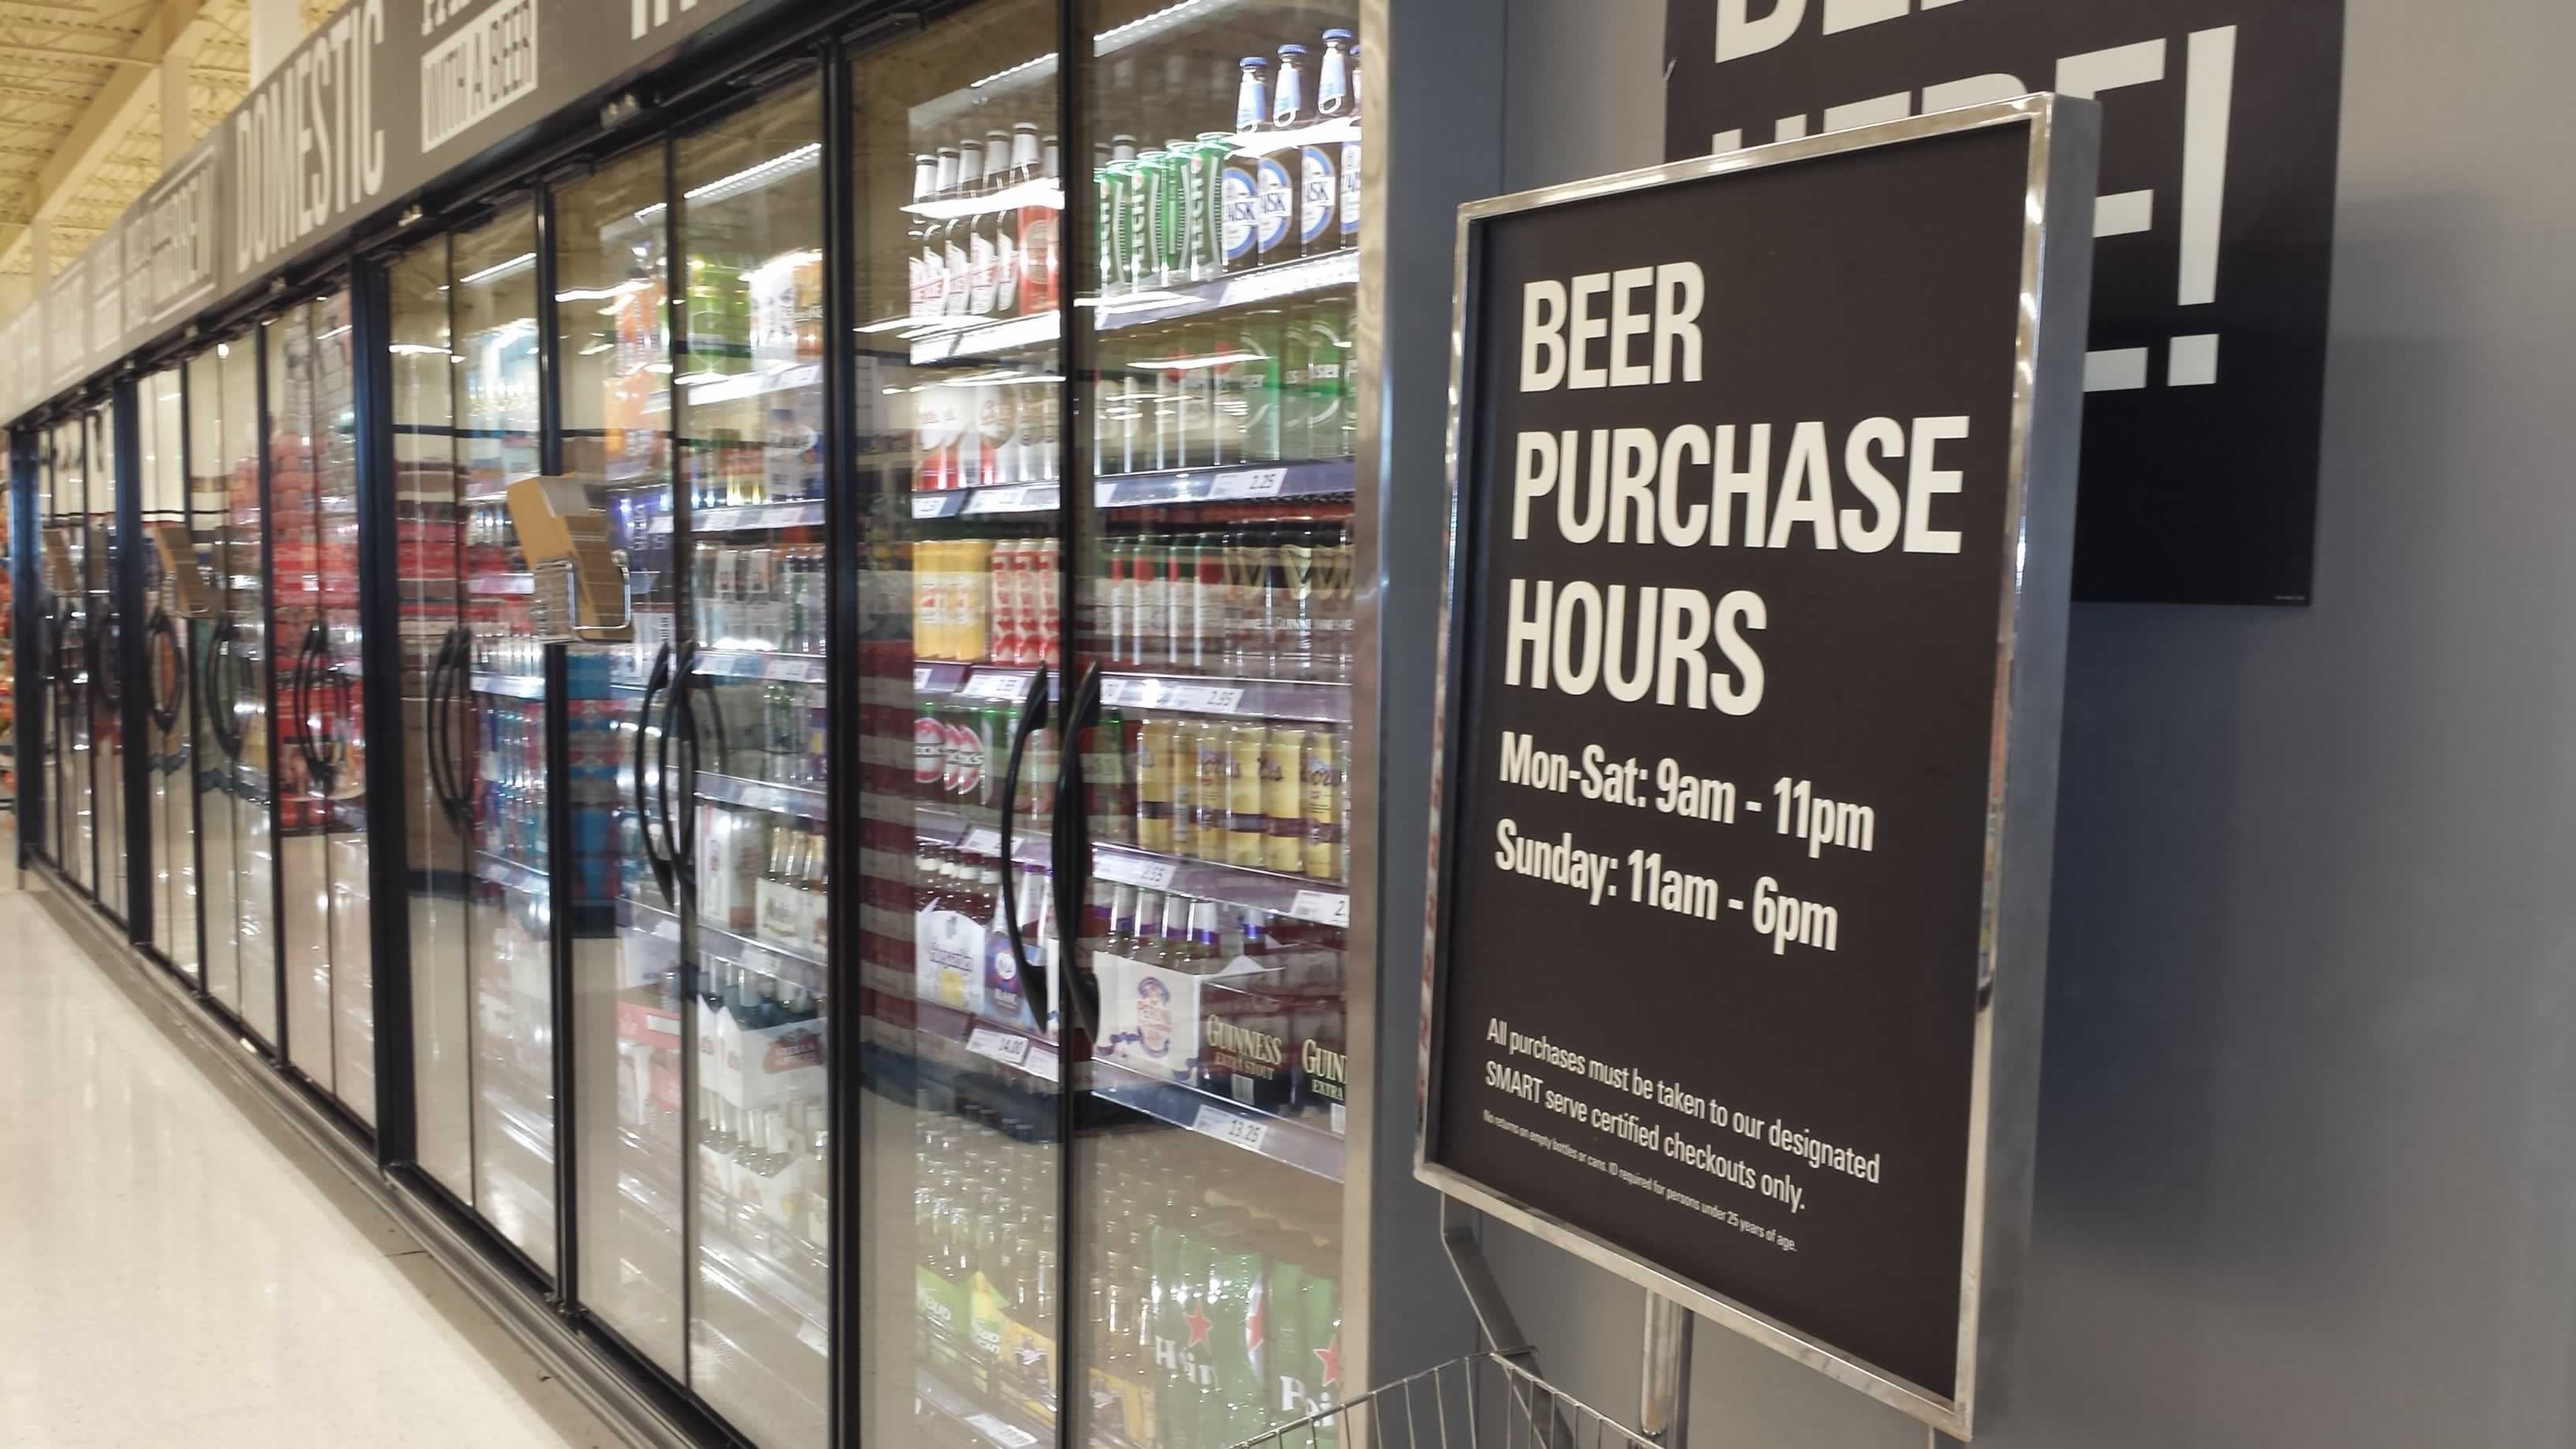 """Sign in grocery stores that says """"Beer Purchase Hours"""""""